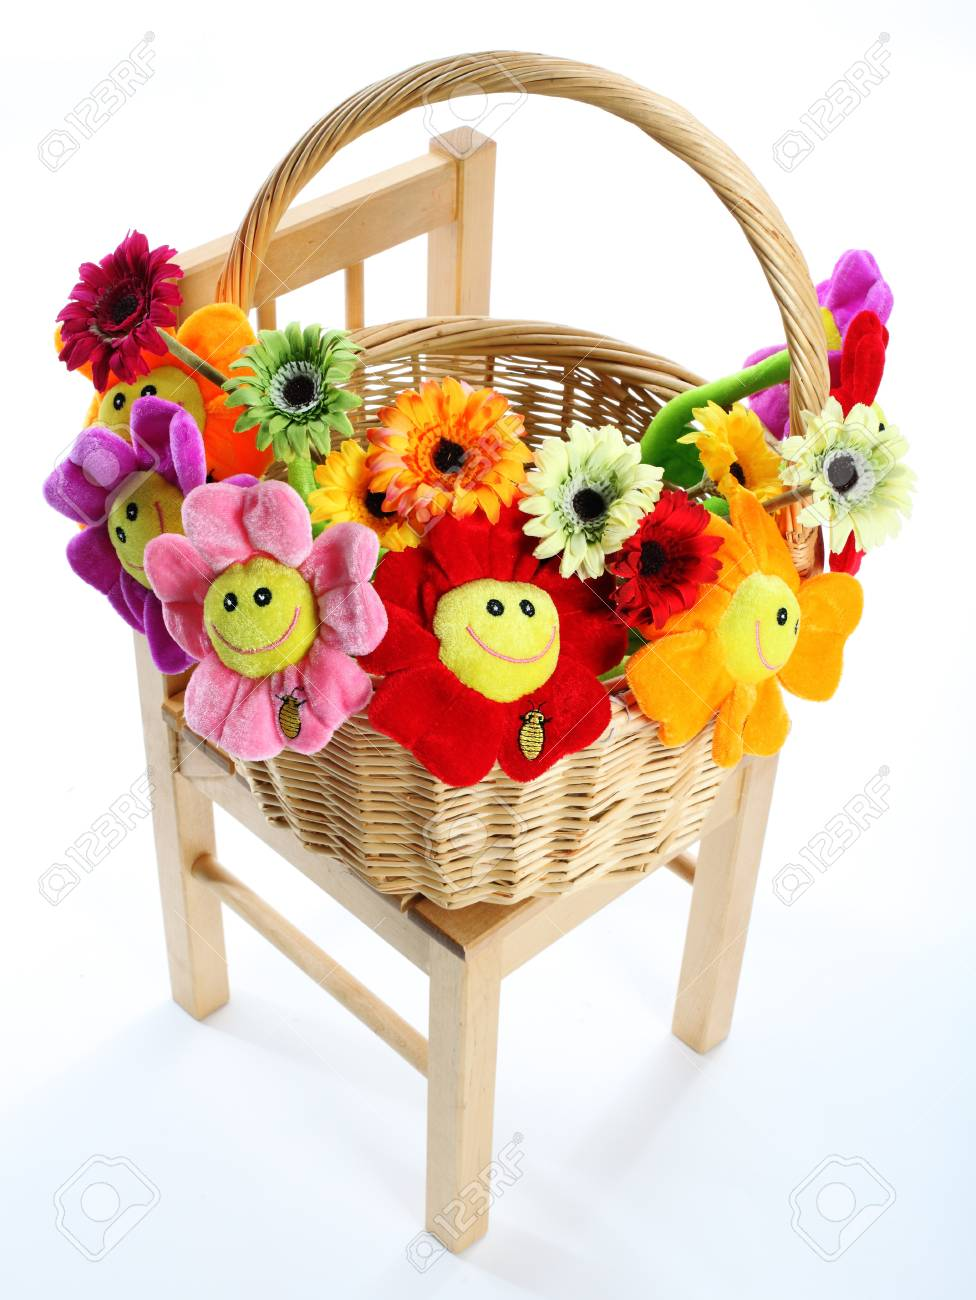 artificial flowers Stock Photo - 13961400